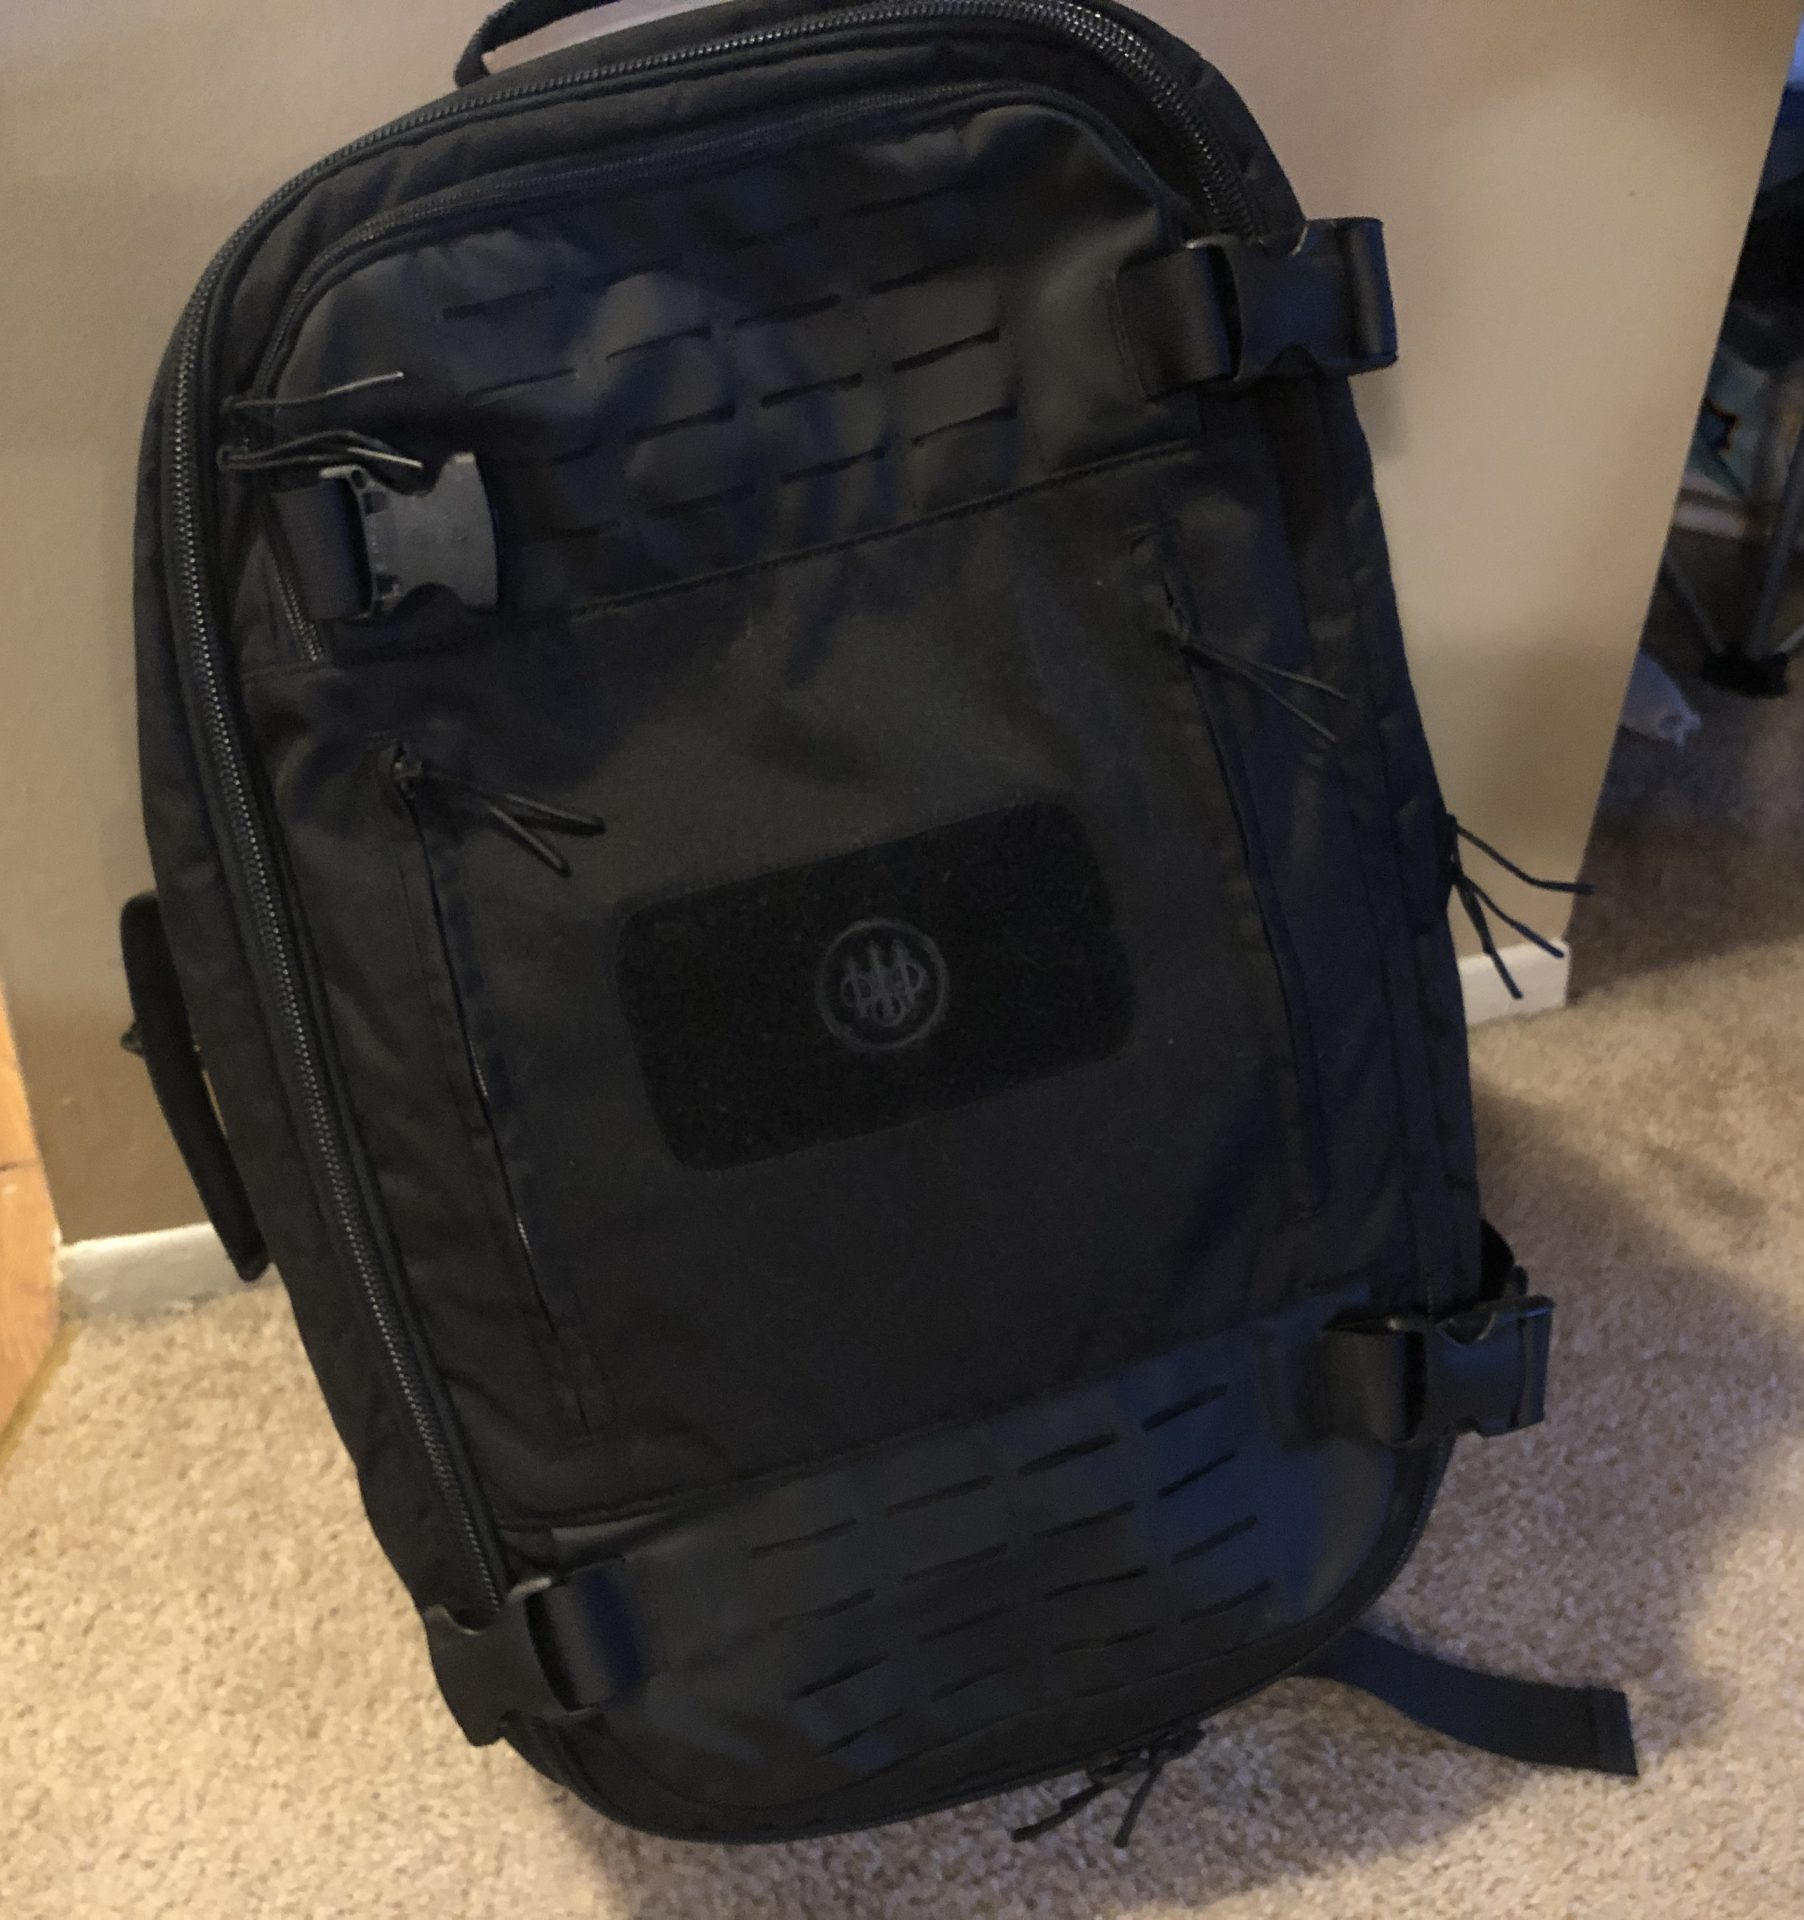 beretta field patrol bag ready to go by the door